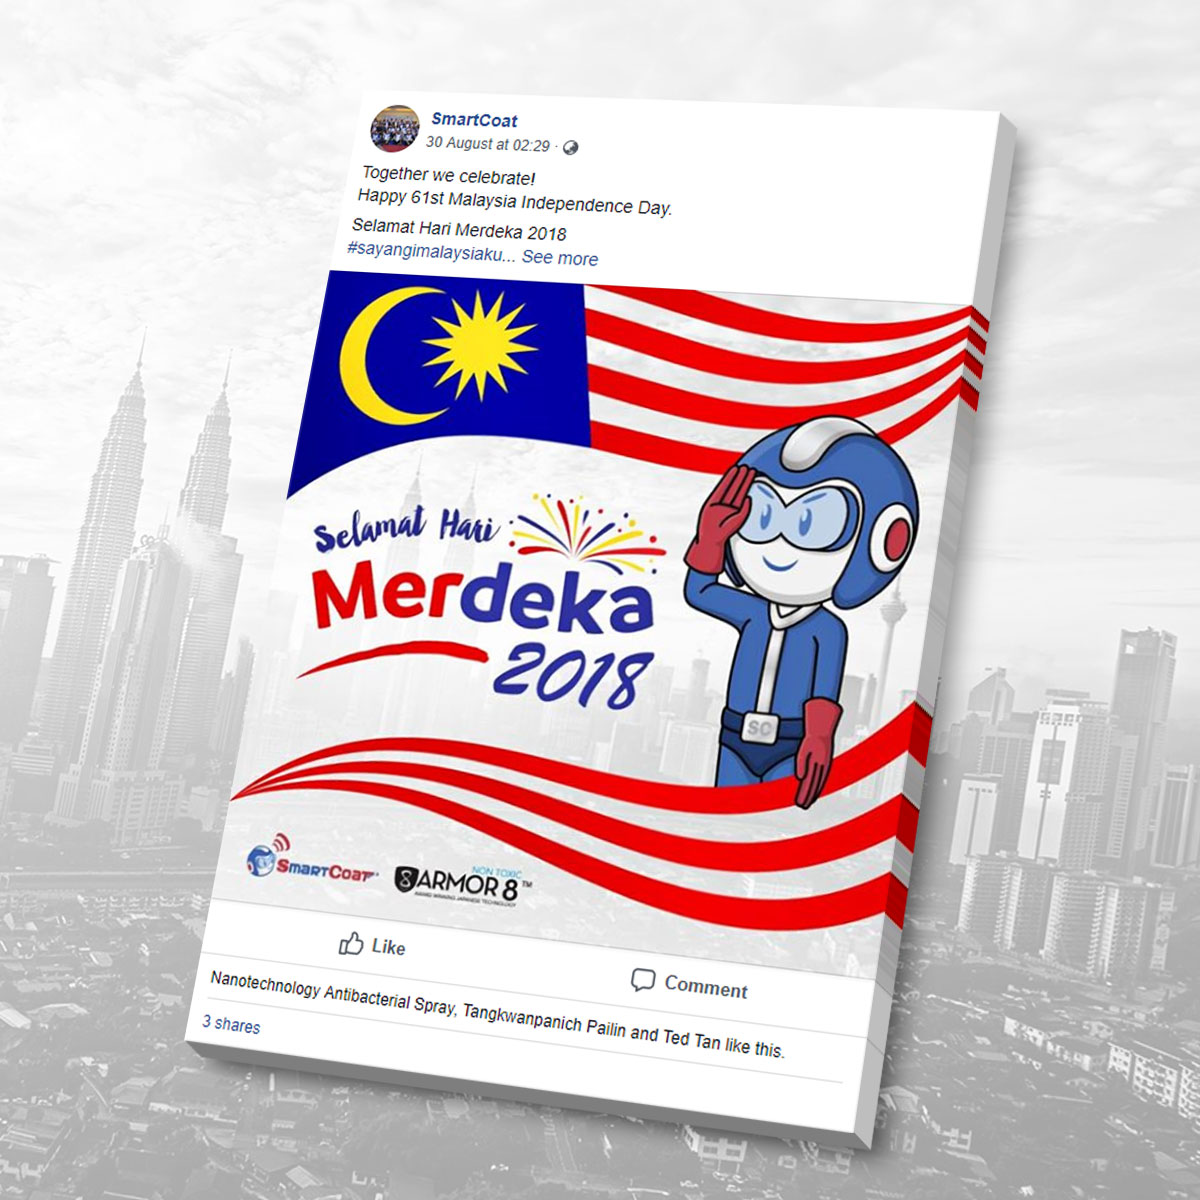 SmartCoat and Armor8 Selamat Hari Merdeka 2018 Facebook Post Design 03